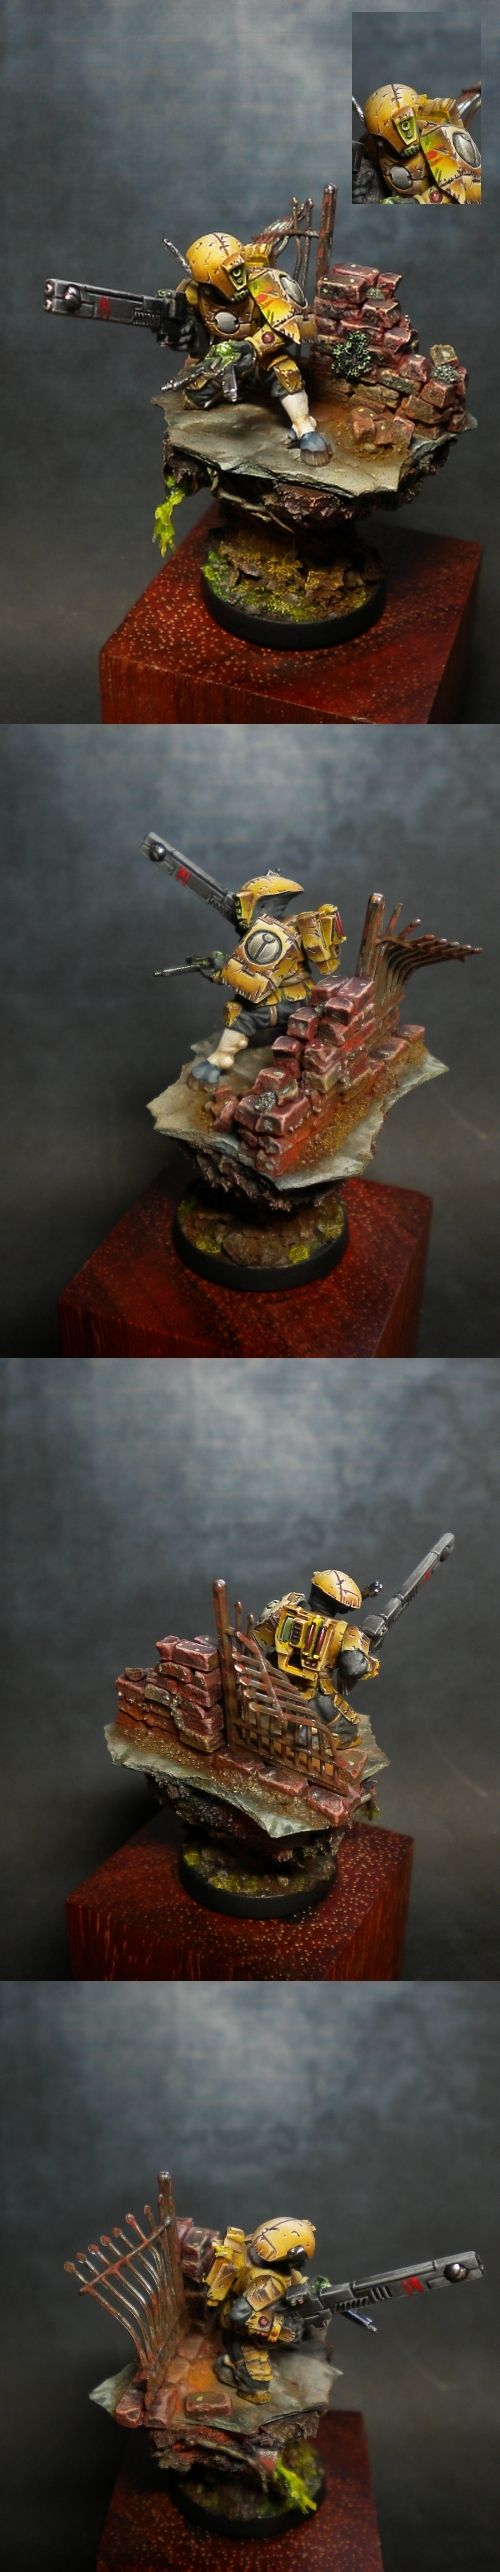 WARHAMMER FREAK FACTORY - Imperio Tau a petición de hey563 - FOTOS DE MINIATURAS